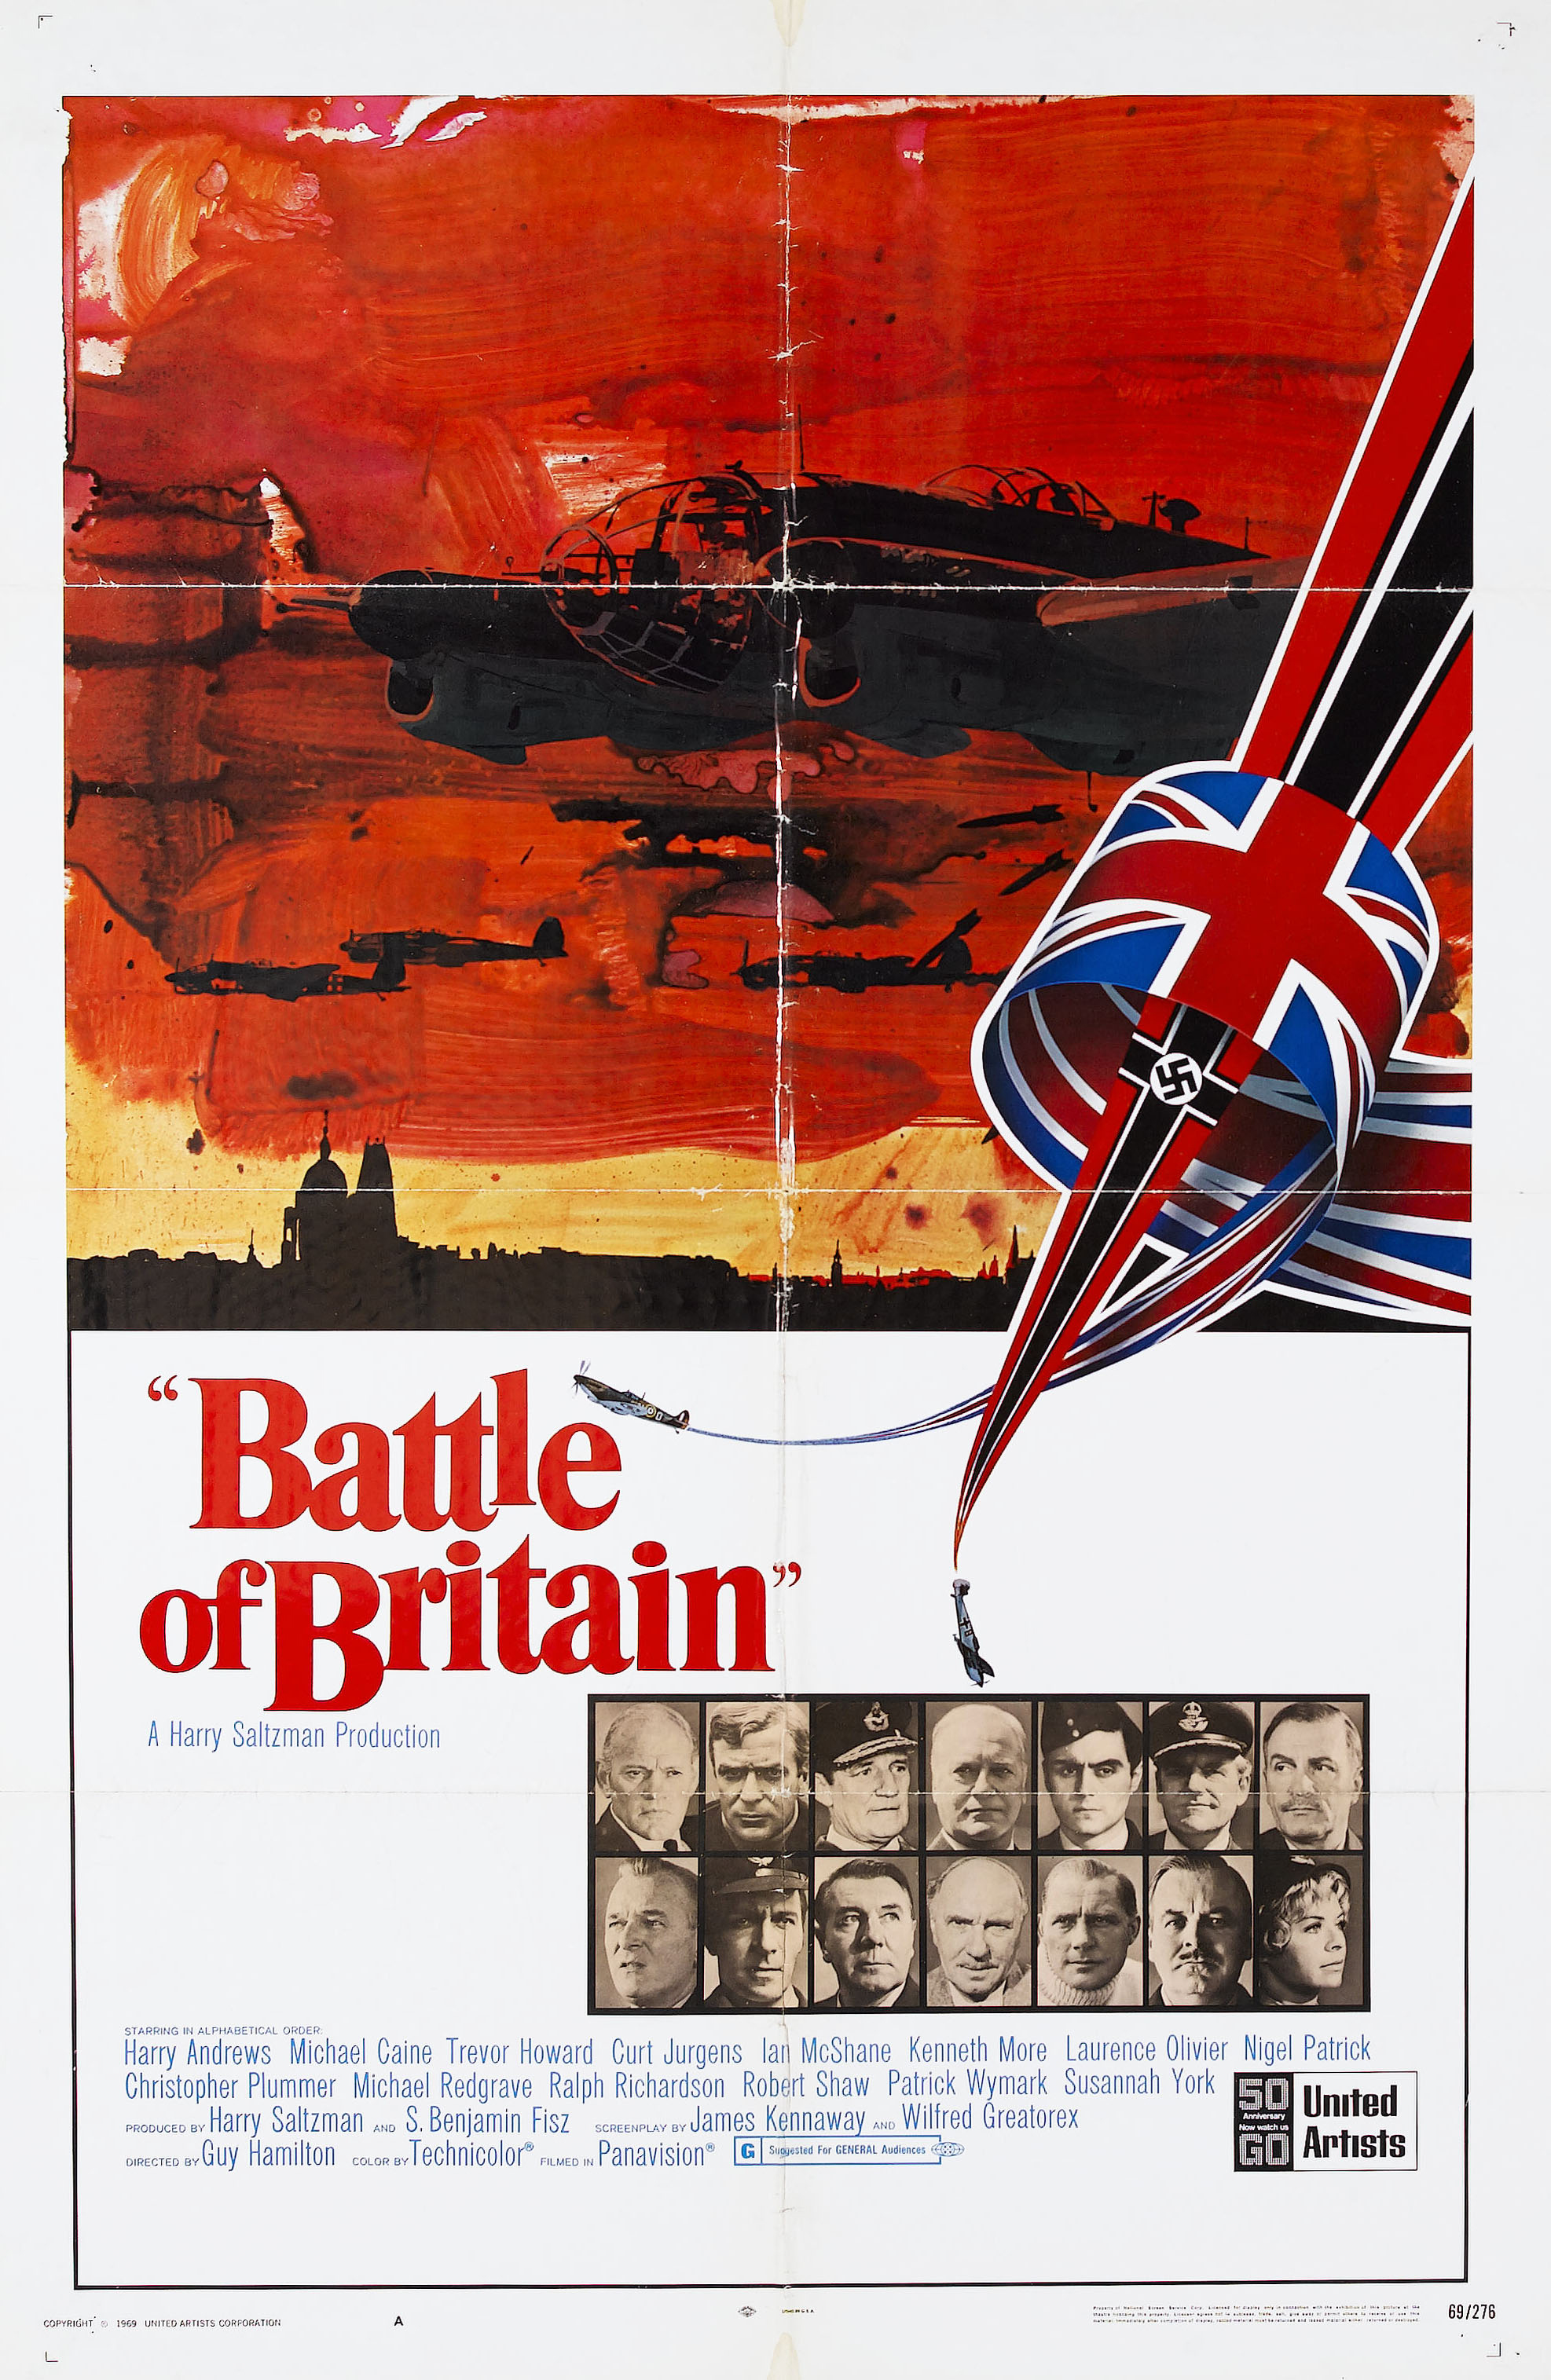 08D_AM2015_BattleBritainCourtesyUnitedArtists_LIVE.jpg